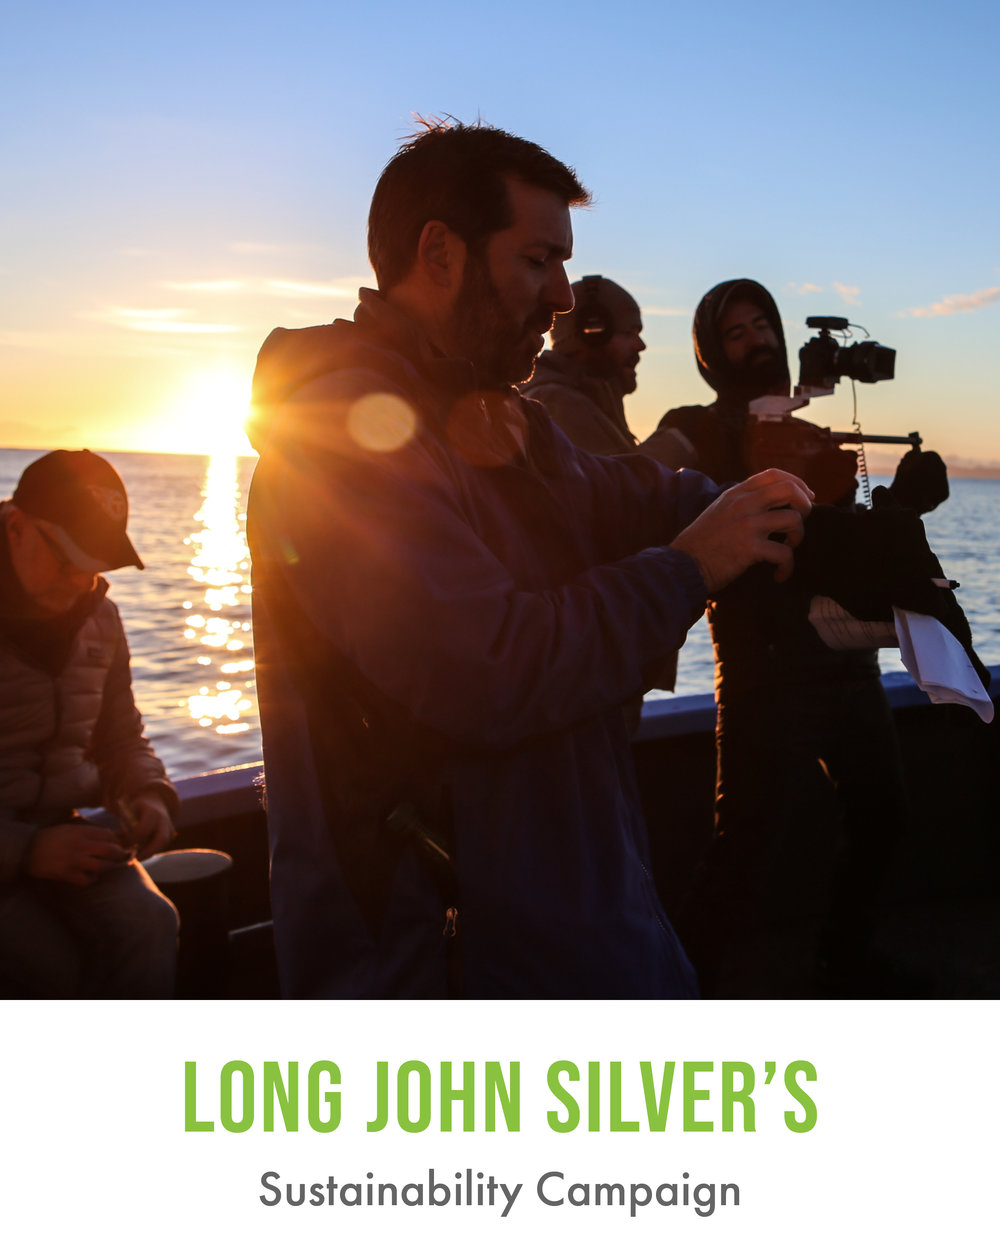 Long John Silver's Sustainability Champaign